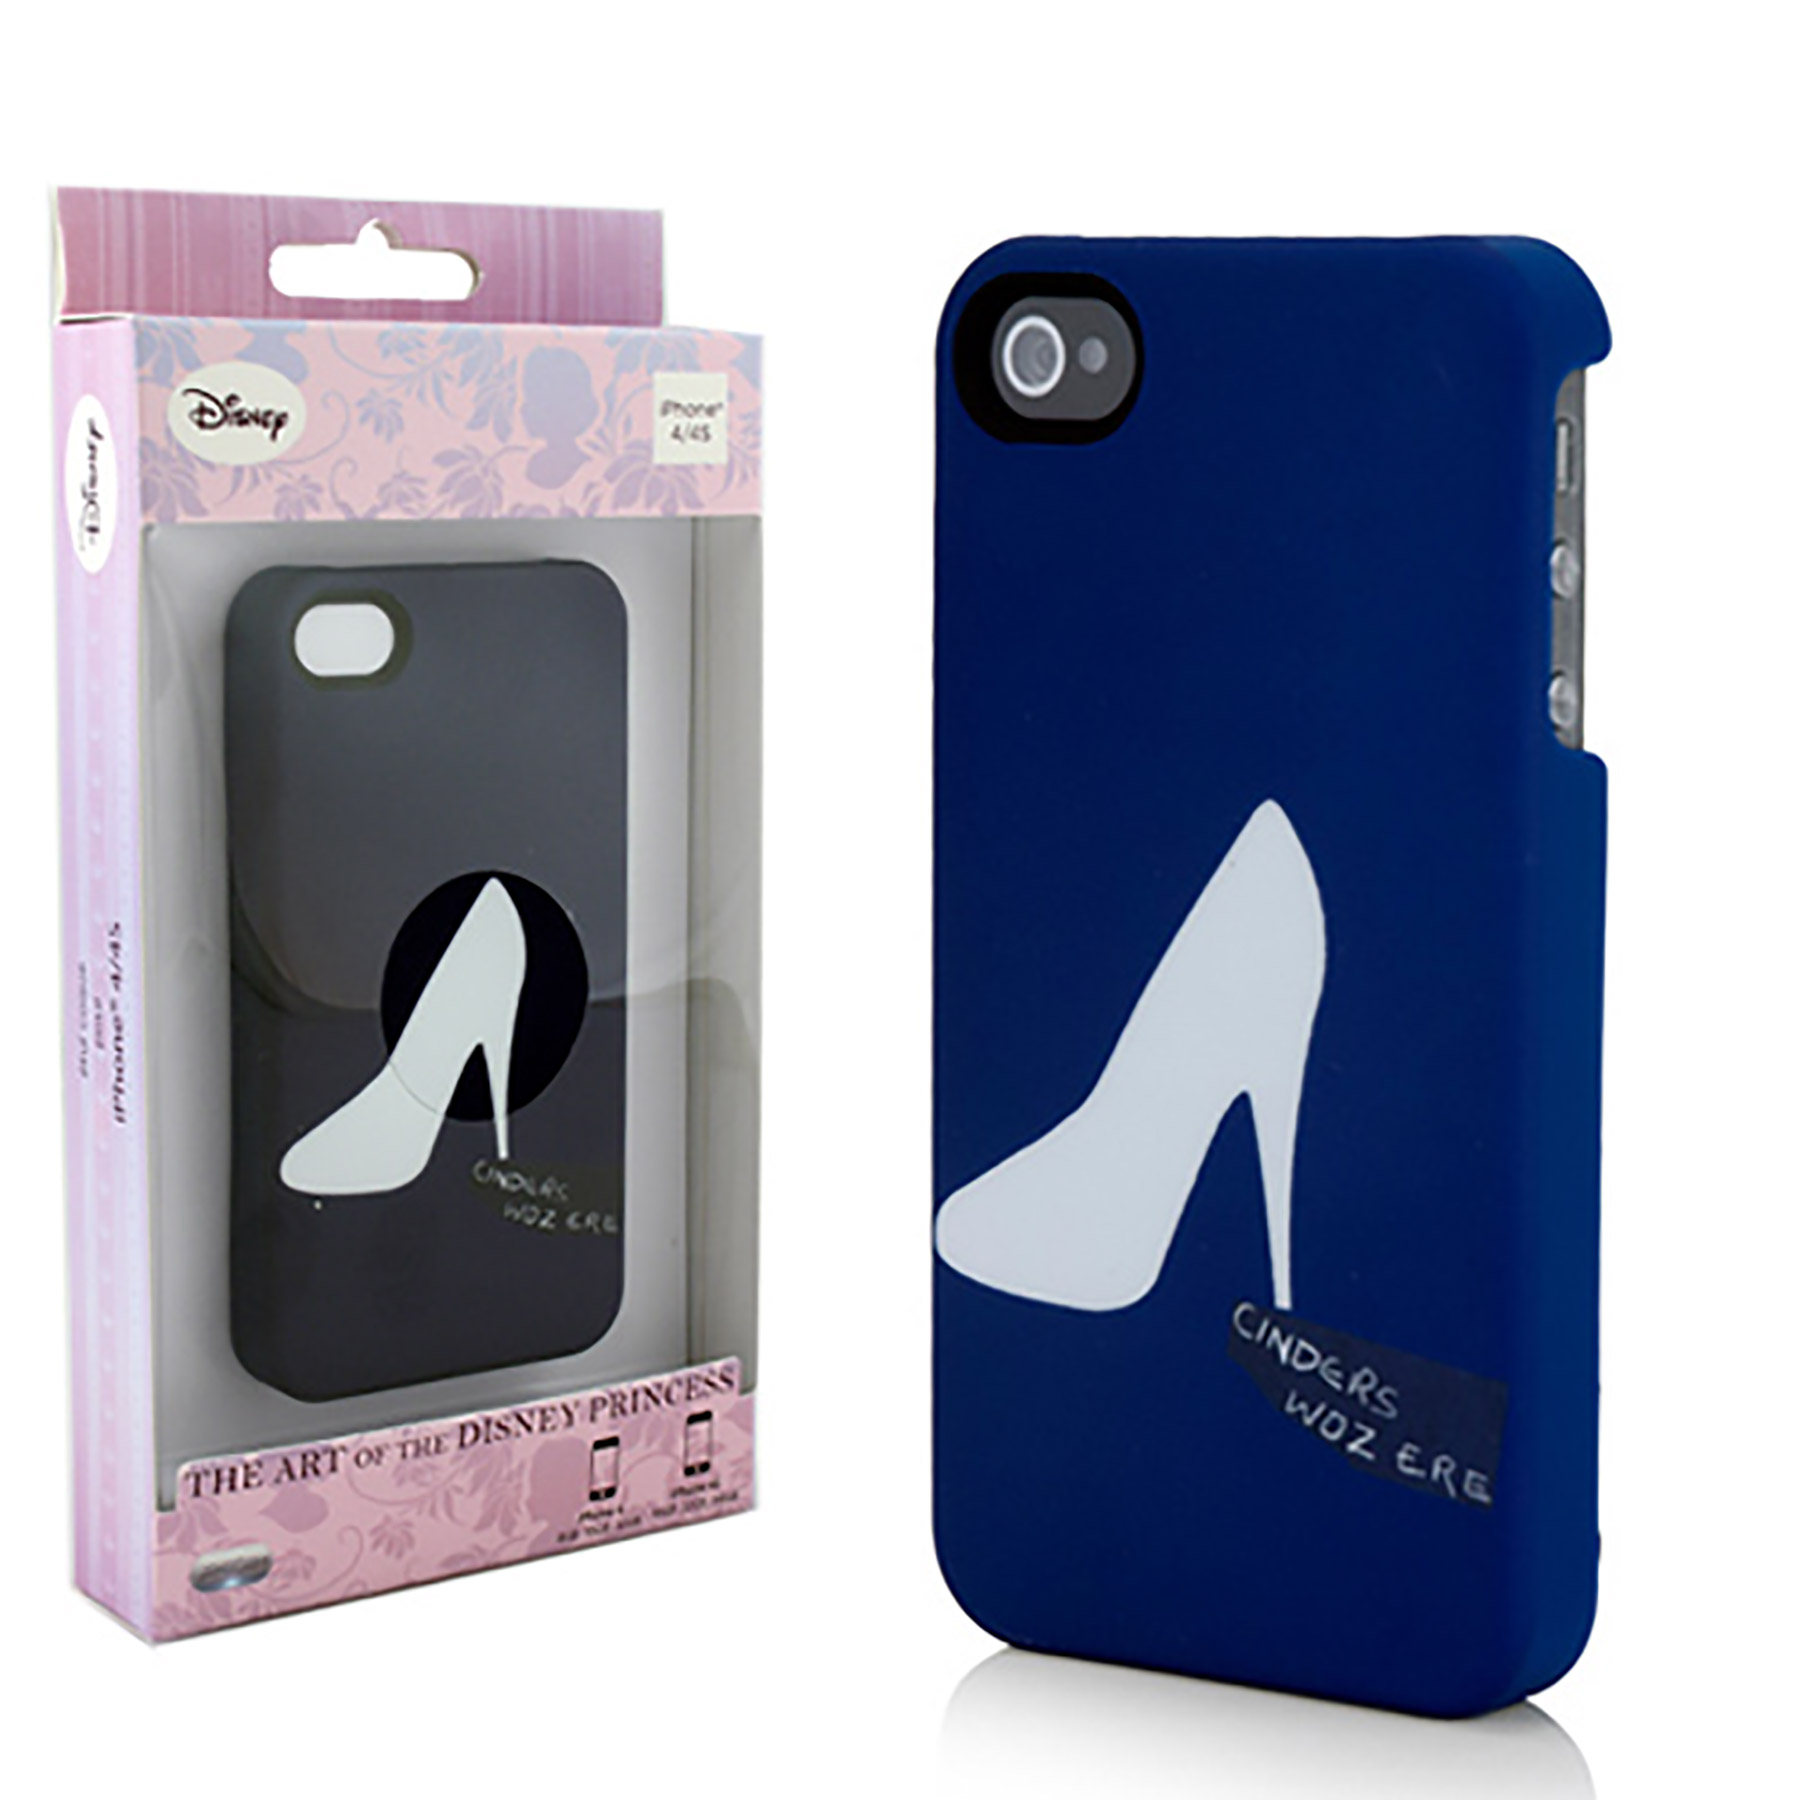 iPhone 4 - Case - Disney Art Princess - Mini Cinderella (PDP)